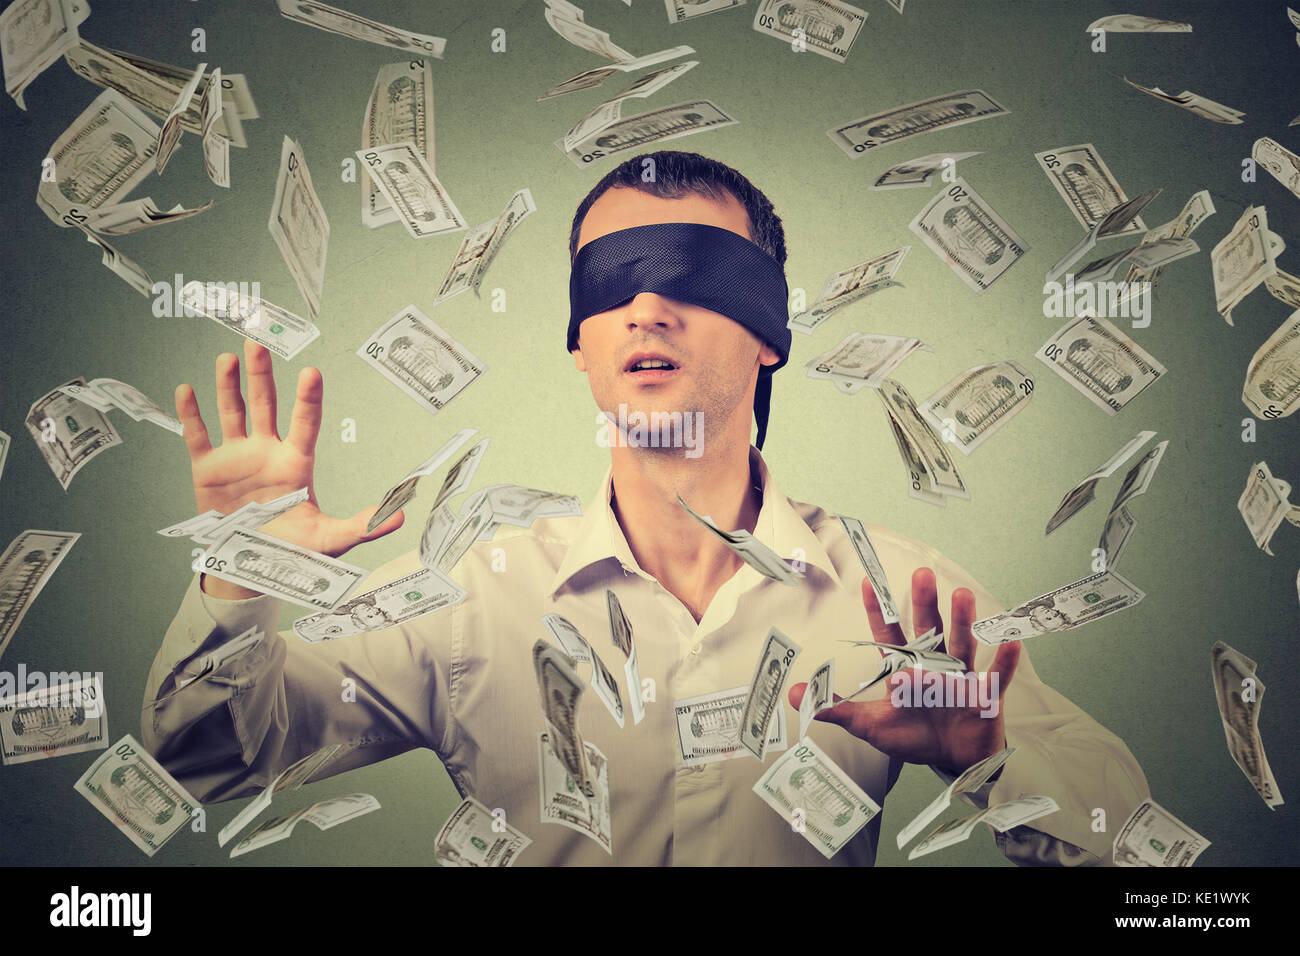 Blindfolded young businessman trying to catch dollar bills banknotes flying in the air isolated on gray wall background. - Stock Image